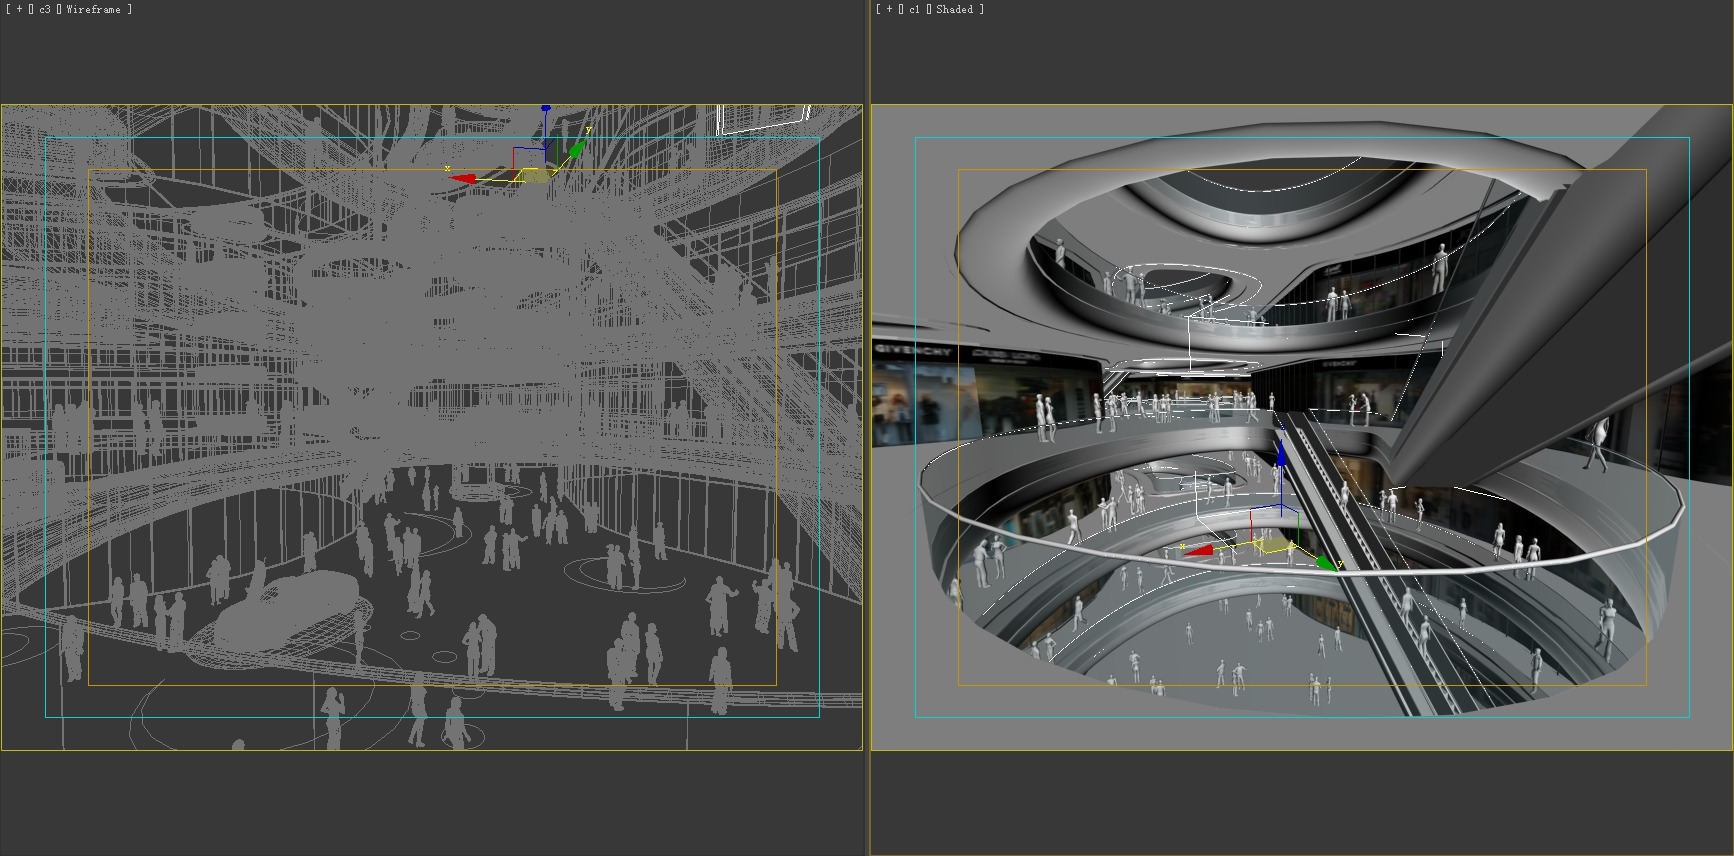 Exquisite Shopping Mall Interior 3D Model .max - CGTrader.com